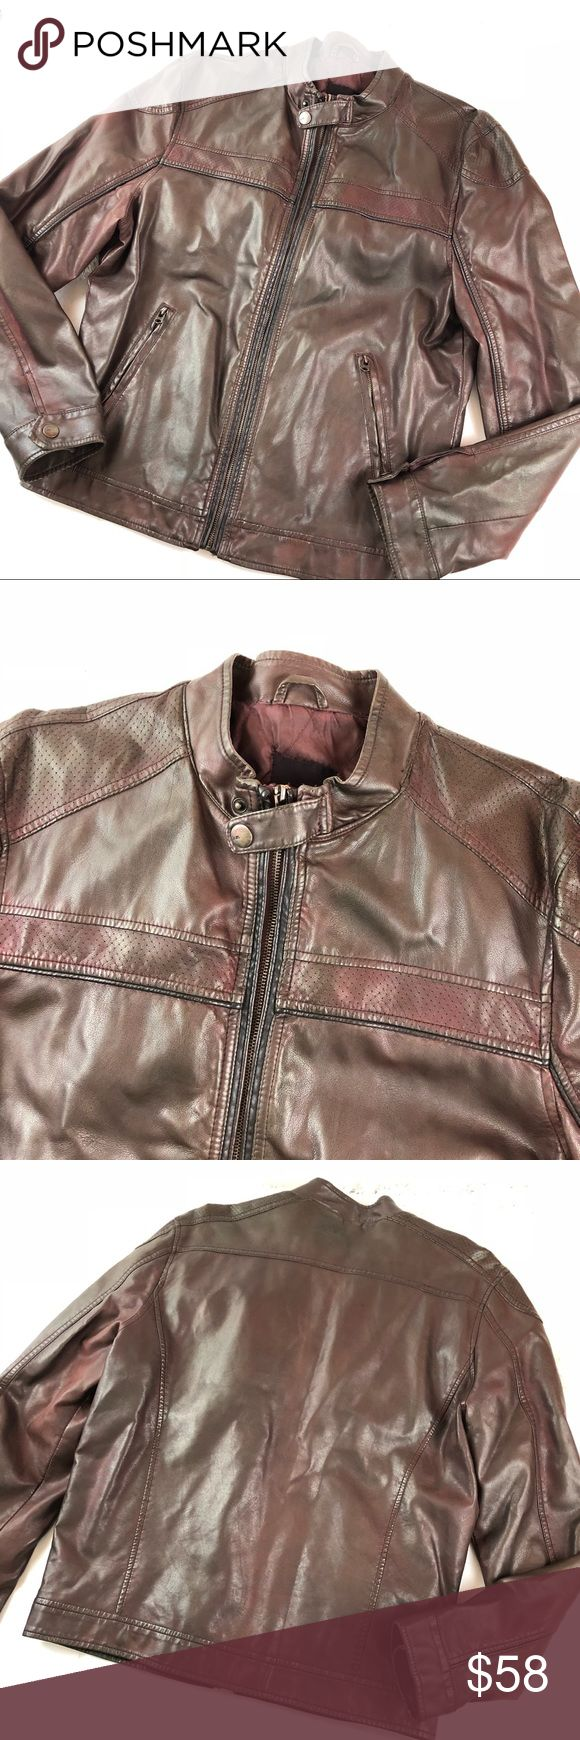 """Zara Young Faux Leather Motorcycle Jacket XL Zara Young Man Faux Leather Jacket Size XL Bomber Brown Red Measurement approximations: Underarm to underarm 22"""" Length 26.5"""" Shoulder to hem 26.5"""" Zara Jackets & Coats Bomber & Varsity"""